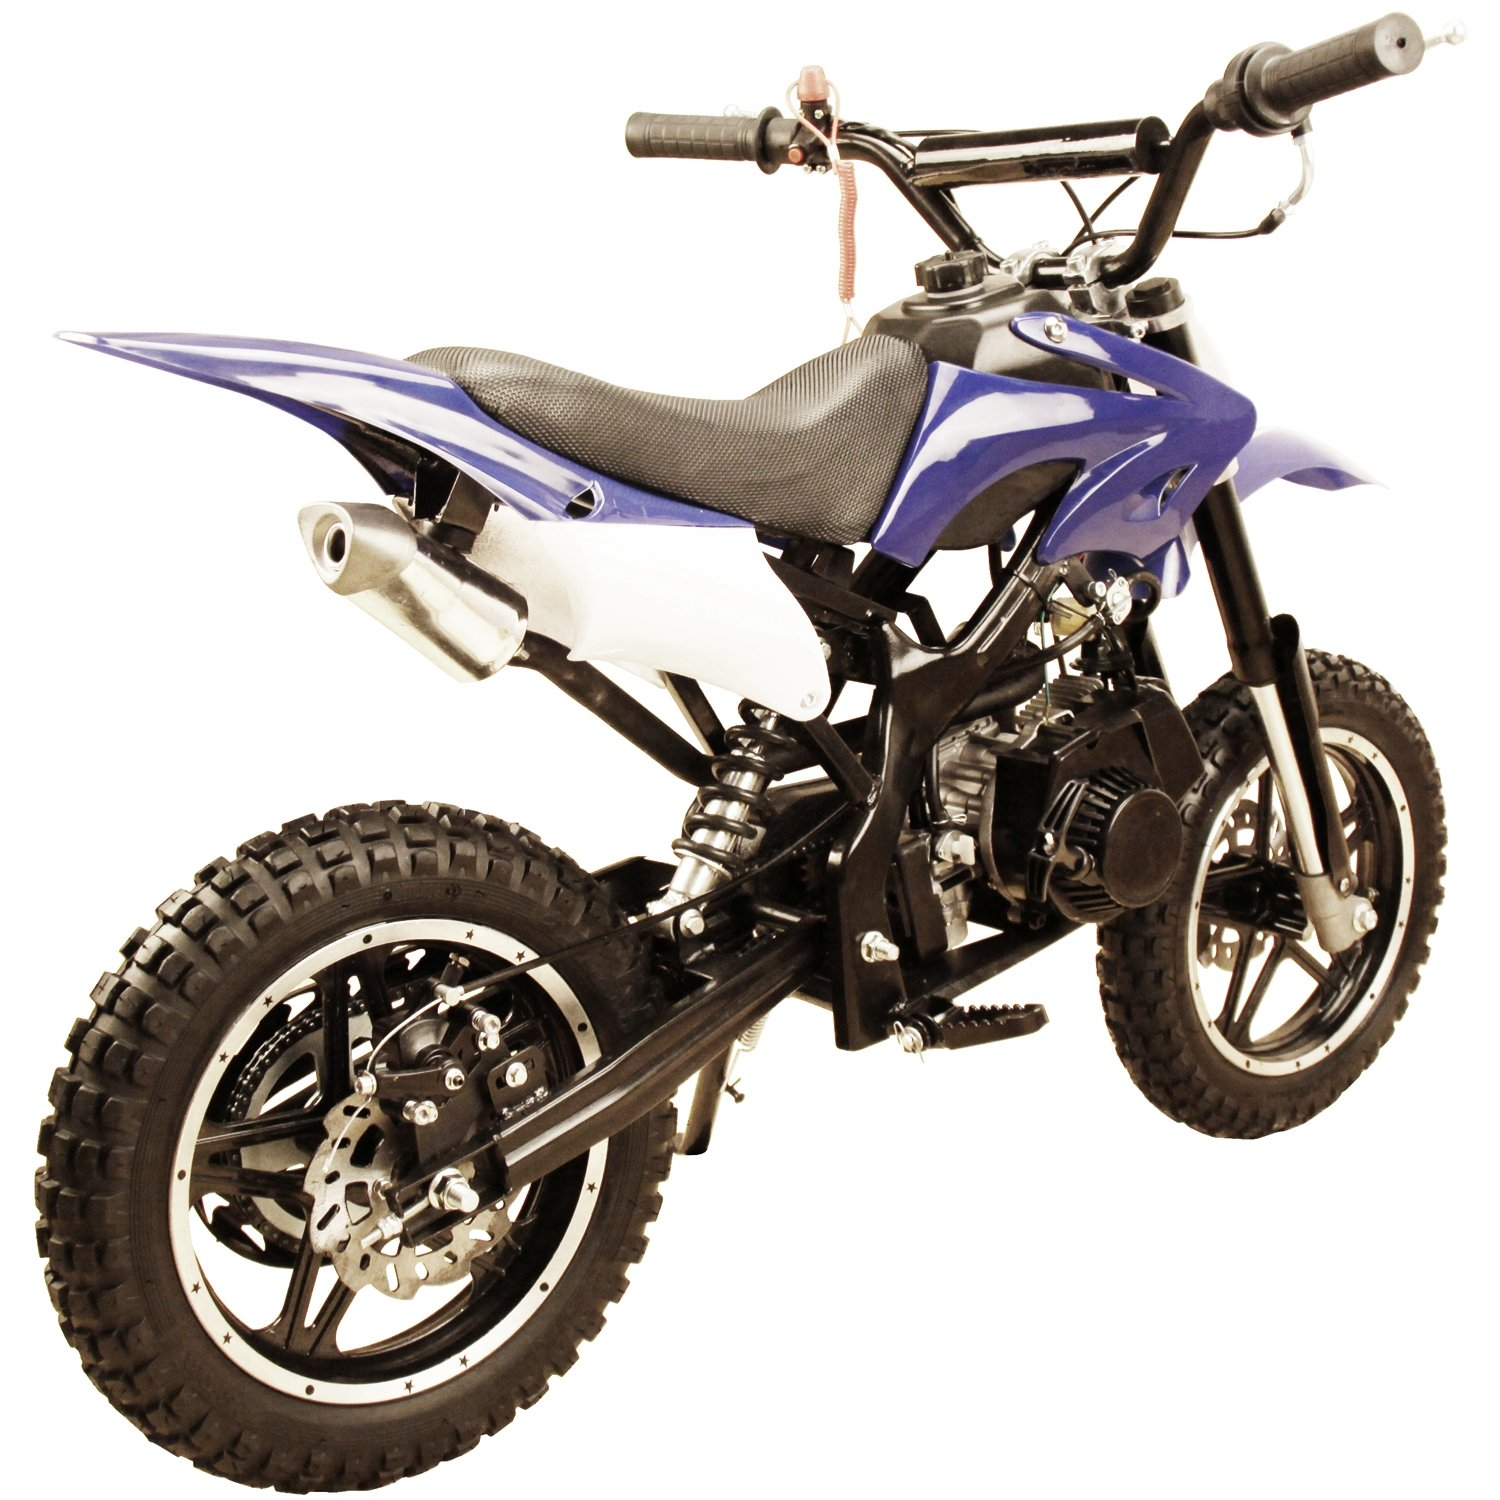 2017/06/dirt bikes for sale and free shipping - Fastest Motocross Bike Amazon Com 49cc 50cc High Performance Blue 2 Stroke Gas Motorized Fastest Motocross Bike